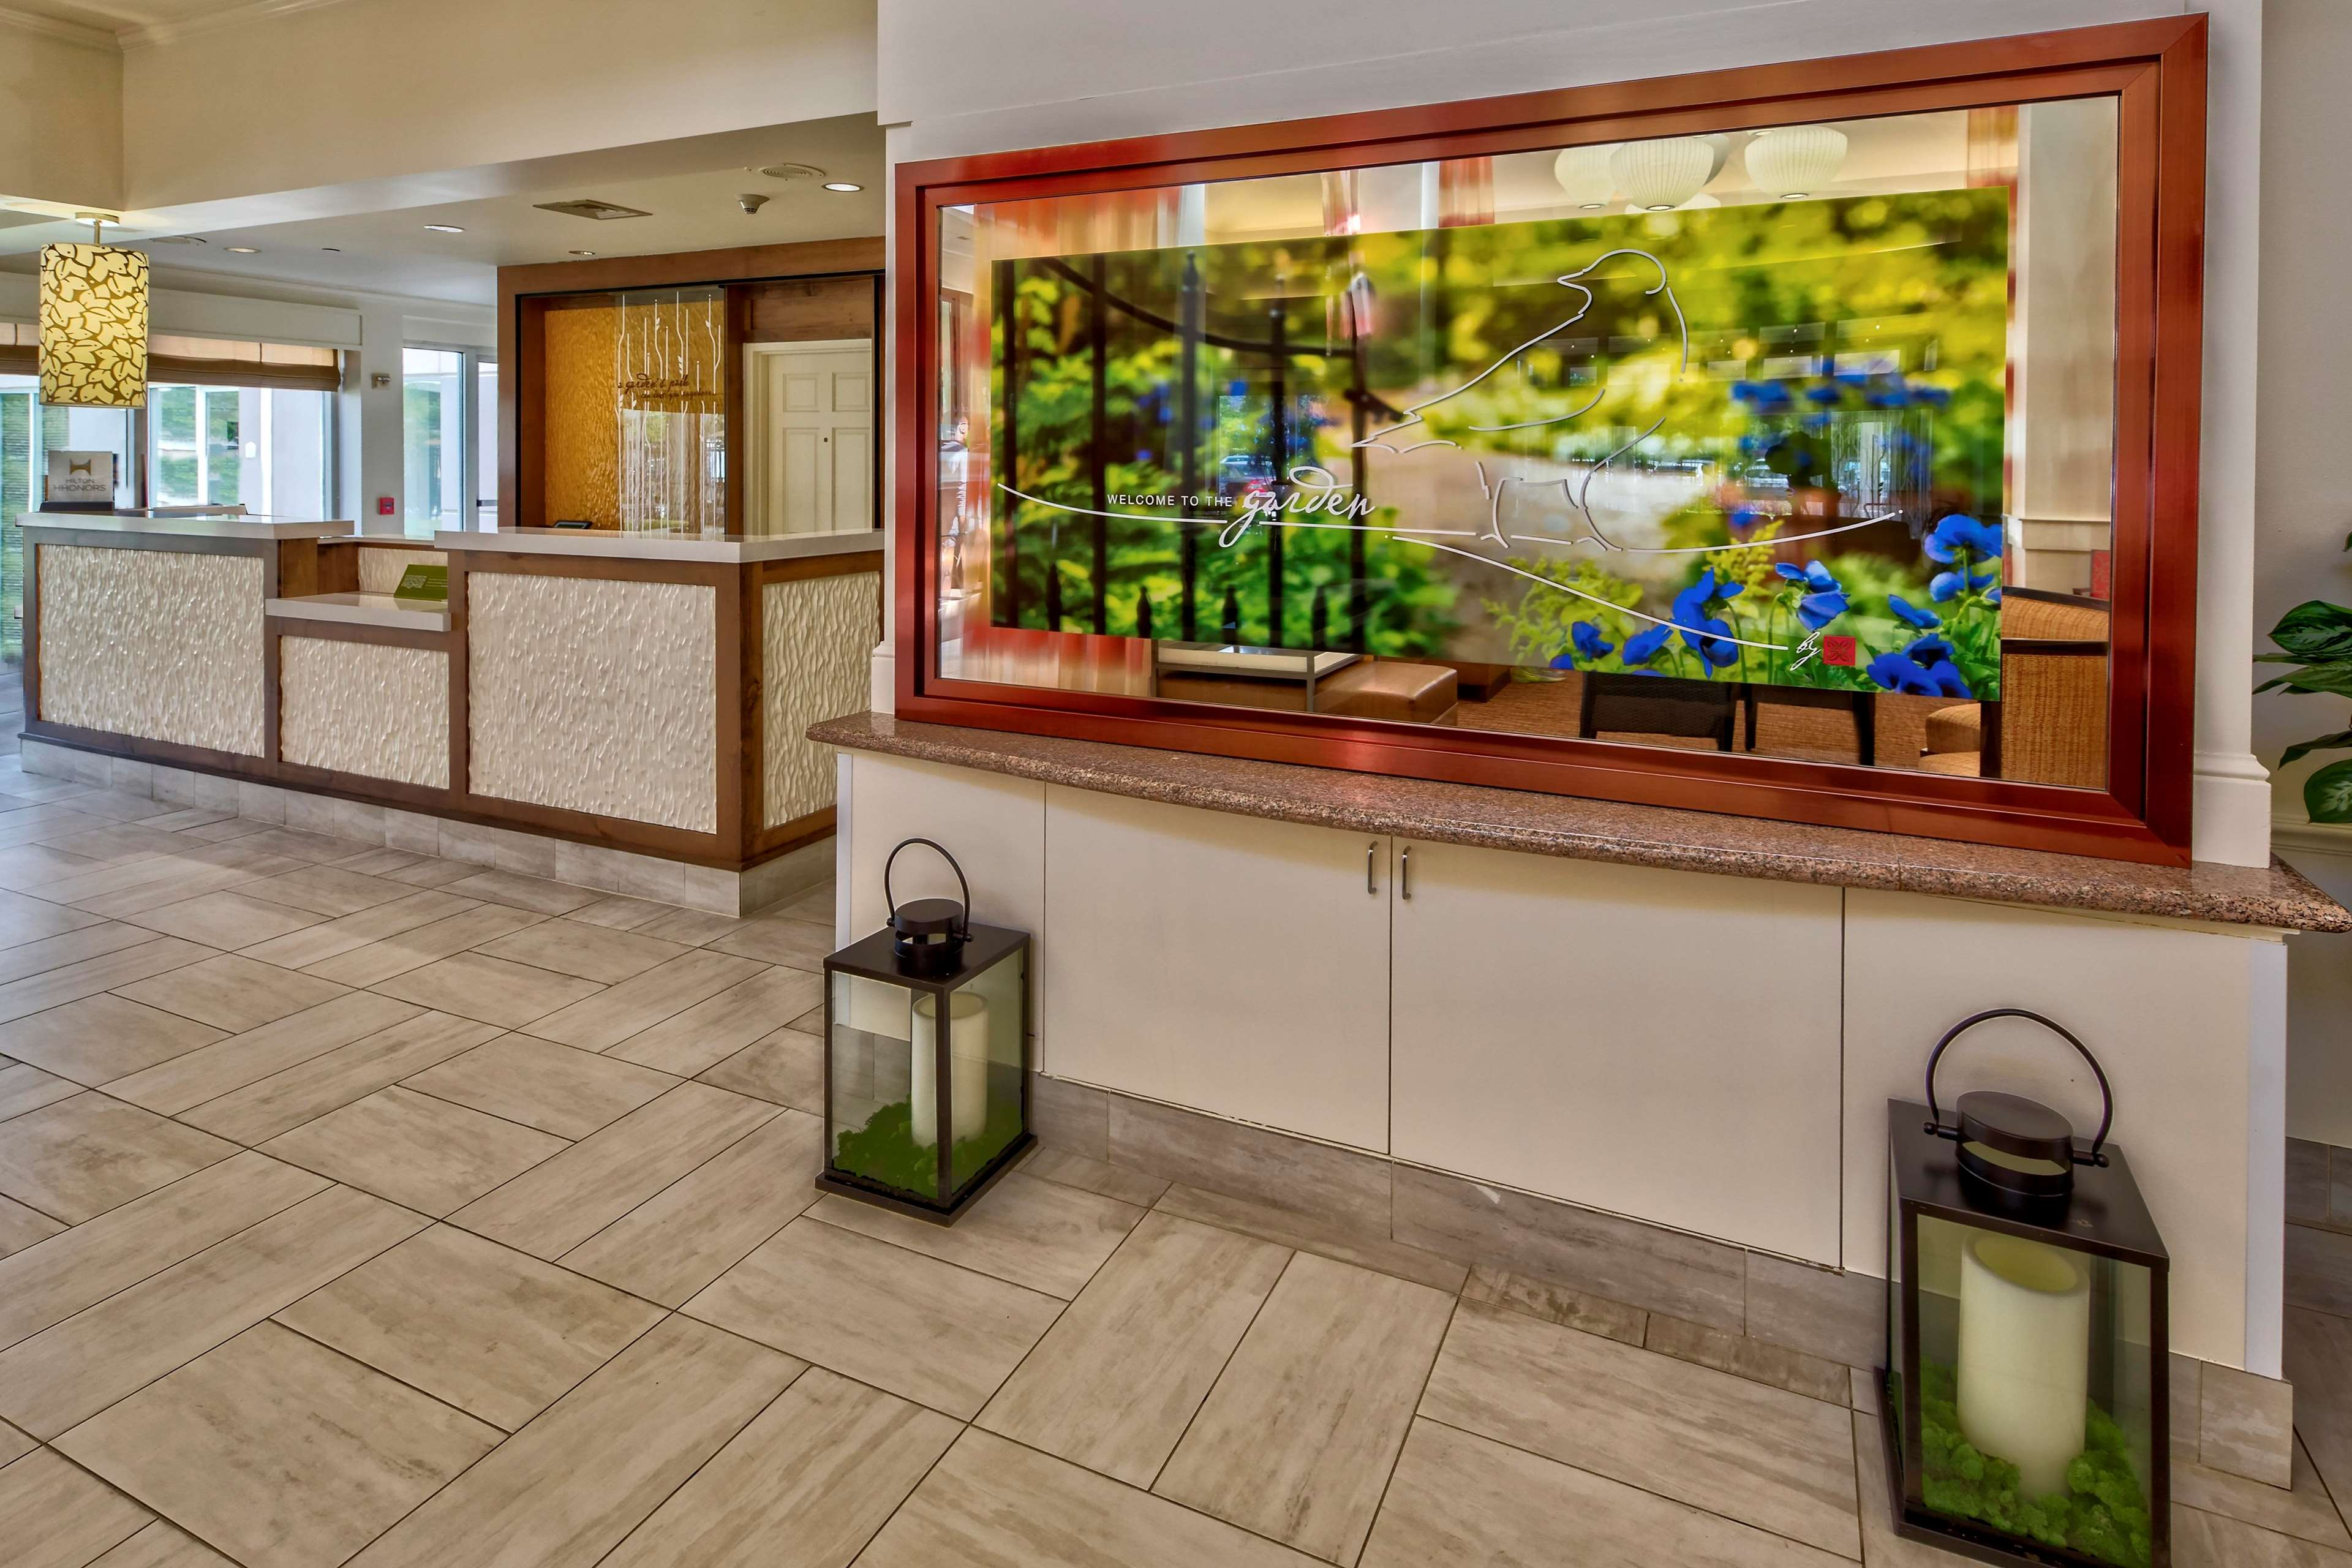 Hilton Garden Inn Houston/Bush Intercontinental Airport image 21